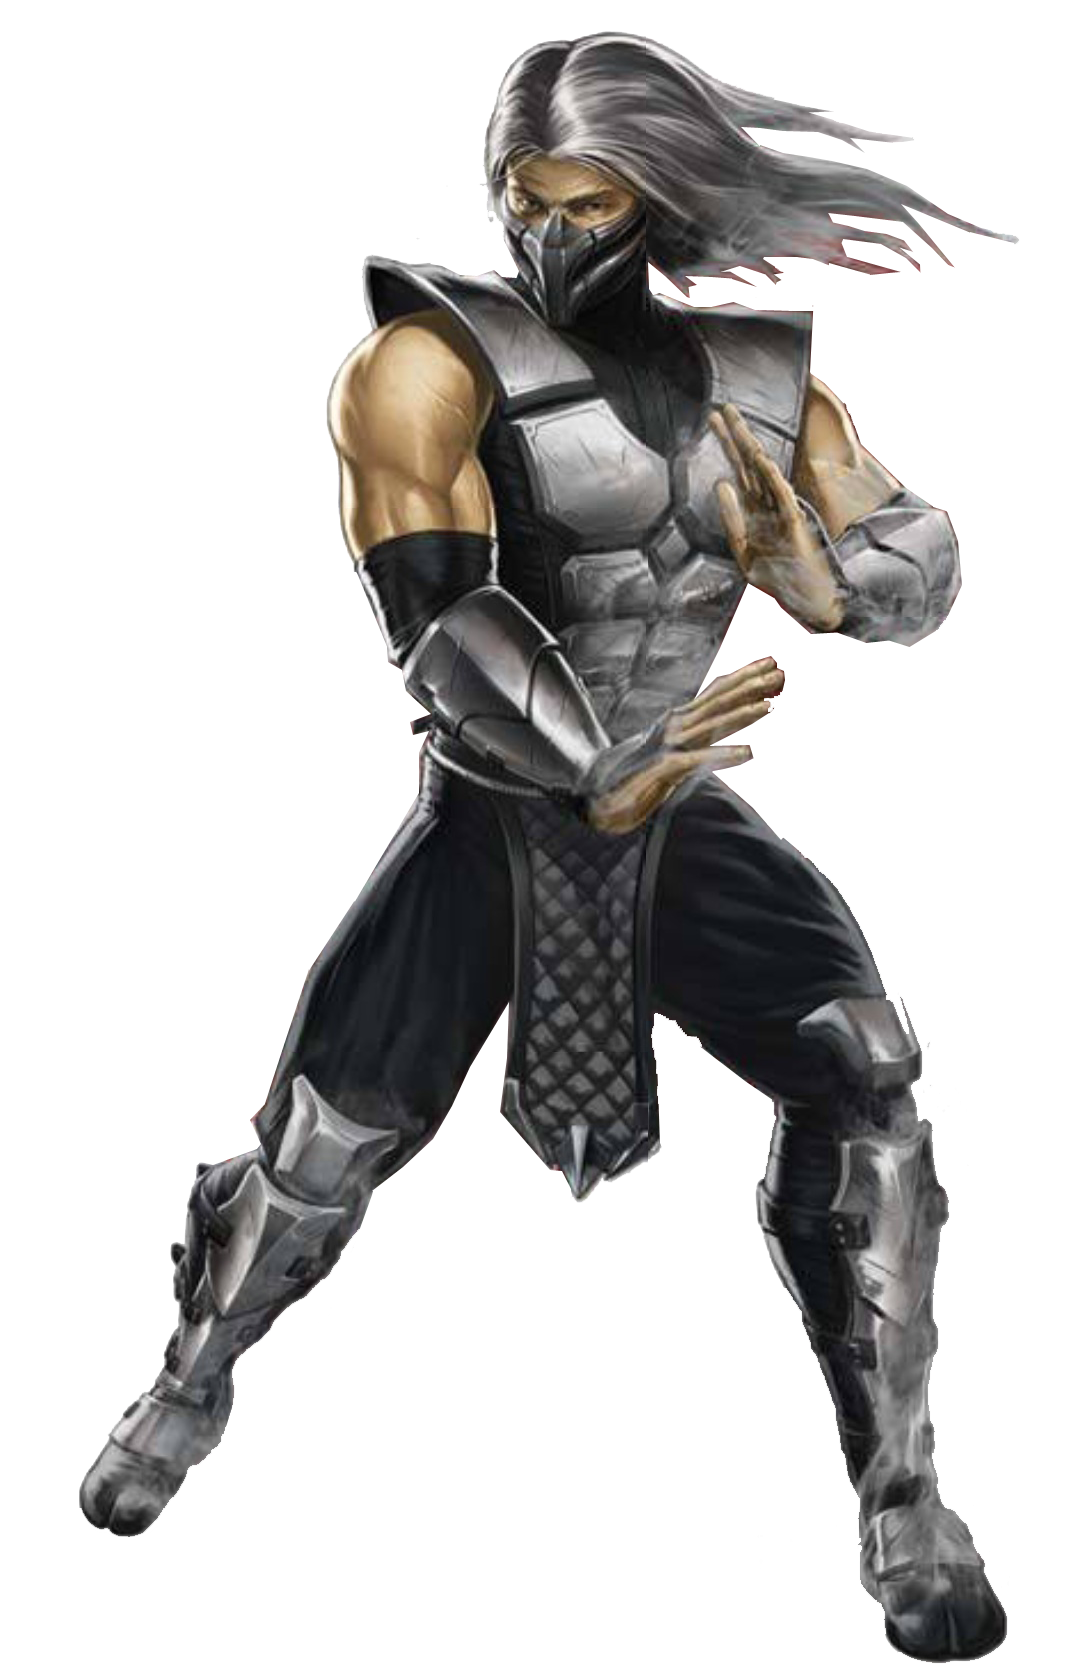 Smoke | Mortal Kombat Wiki | FANDOM powered by Wikia